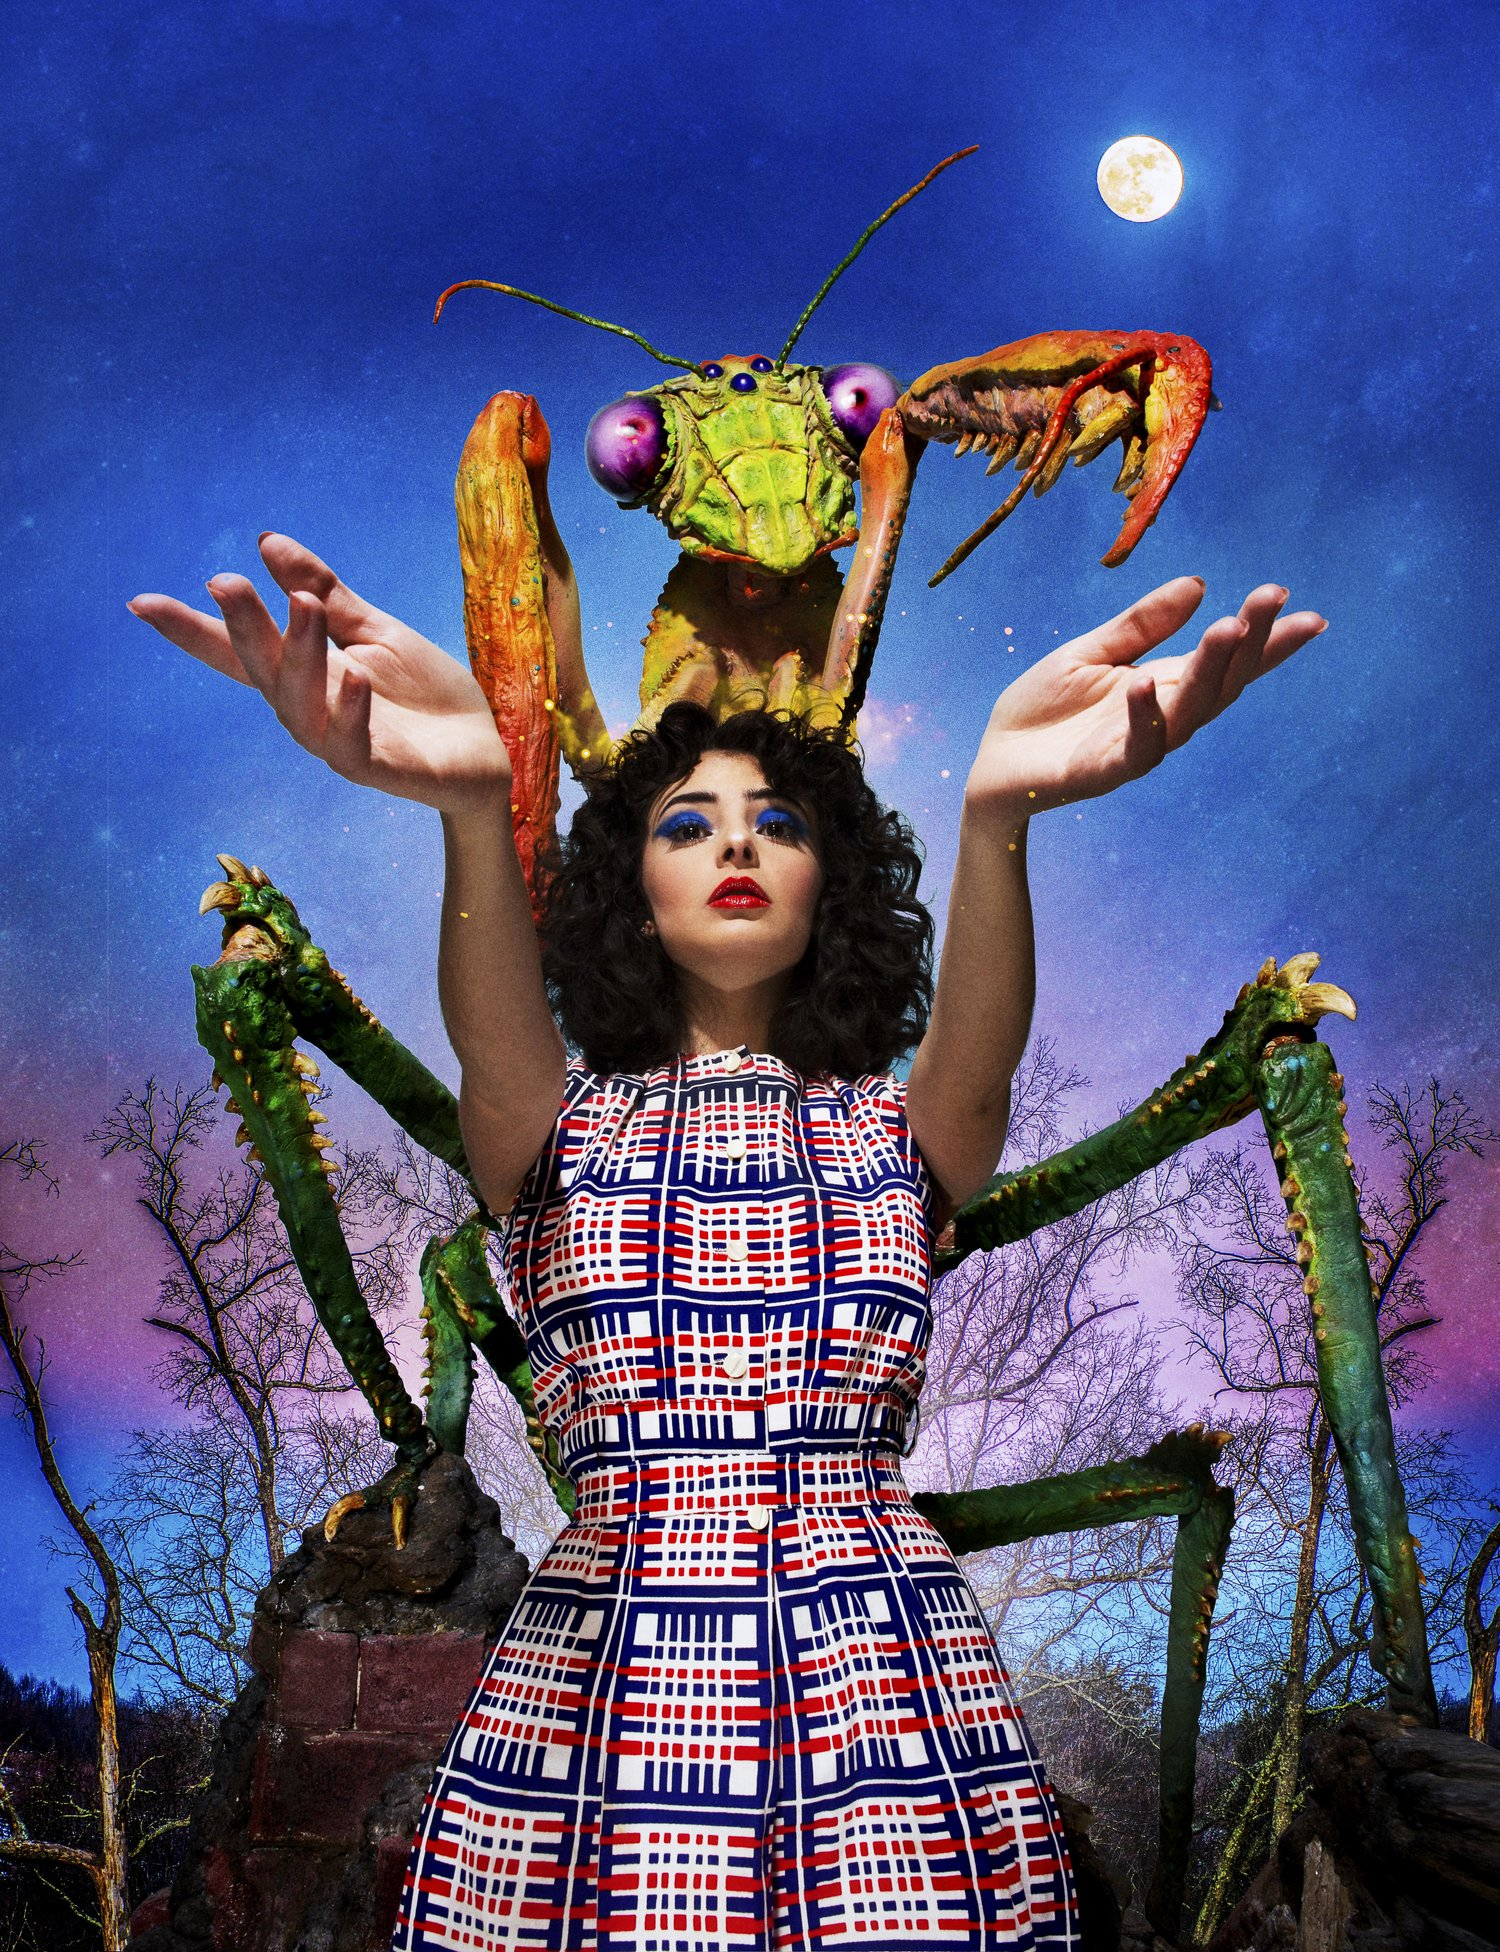 attack of the 50 foot mantis by commercial fashion artist photographer justin atkins.jpg.jpg.jpg